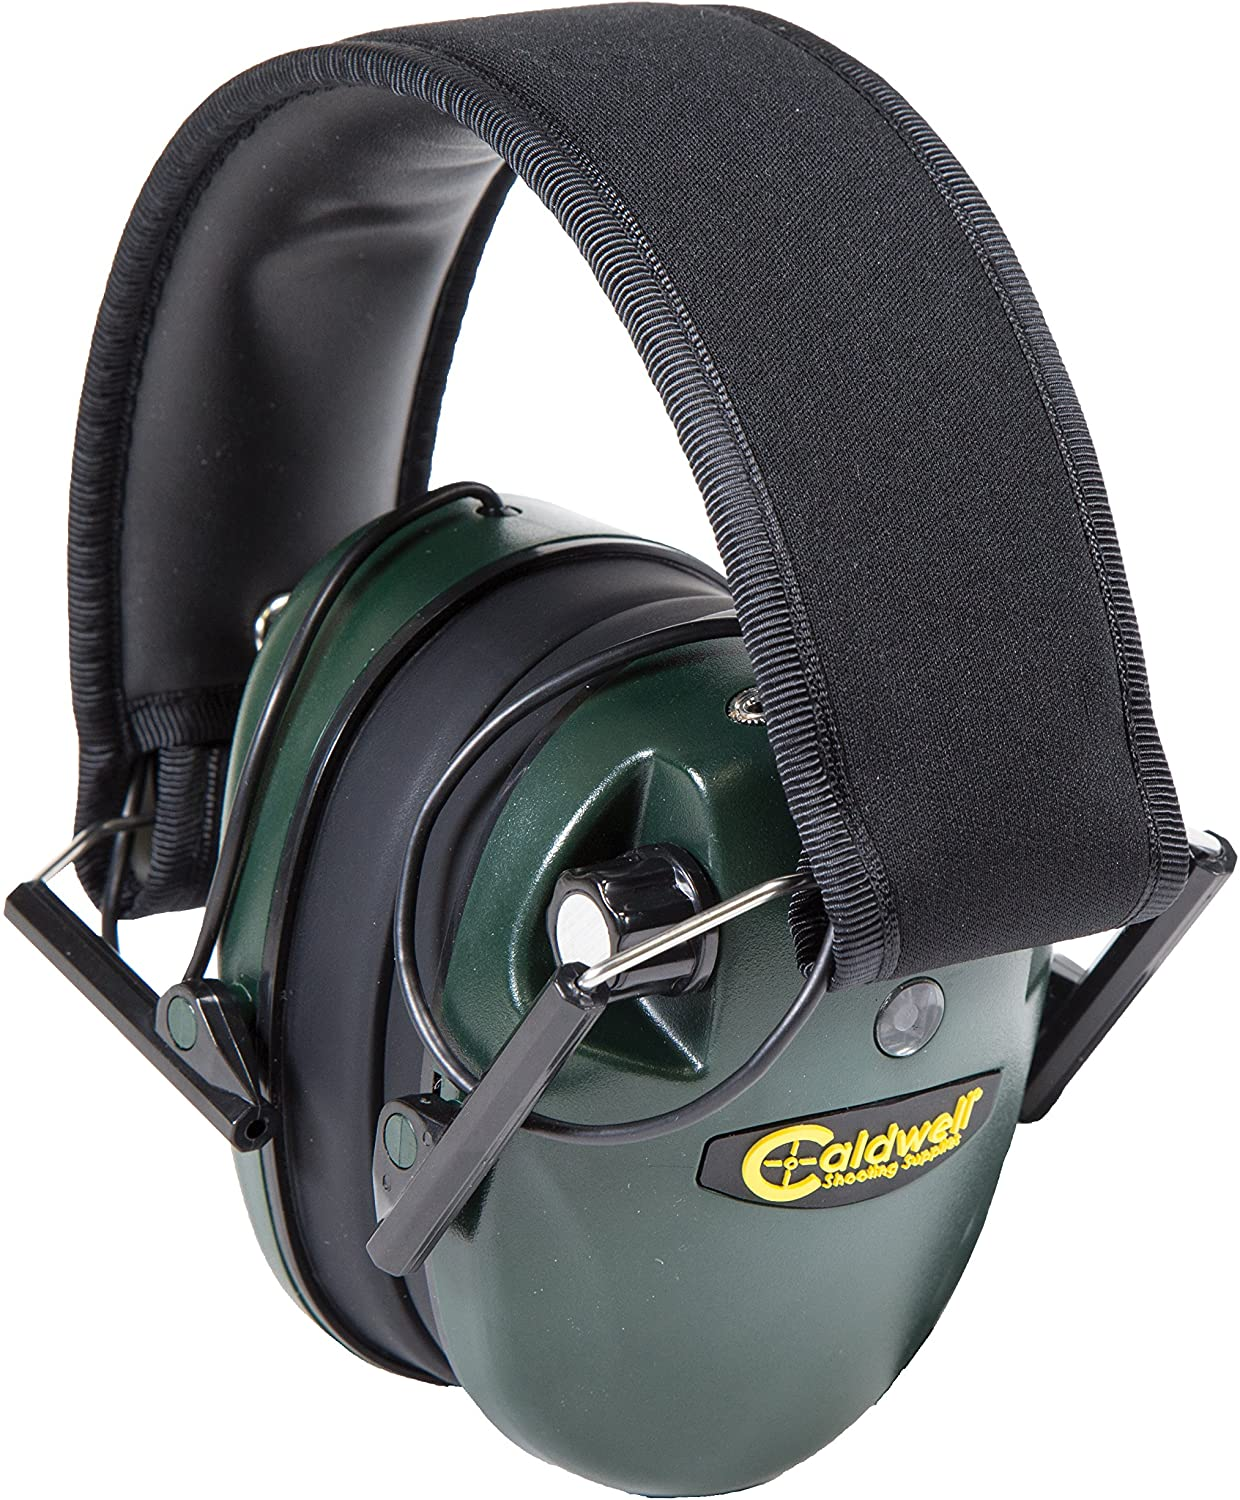 Caldwell E-Max - ADULT Green - Low Profile Electronic 23 NRR Hearing Protection with Sound Amplification - Adjustable Earmuffs for Shooting, Hunting and Range : Hunting Earmuffs : Sports & Outdoors